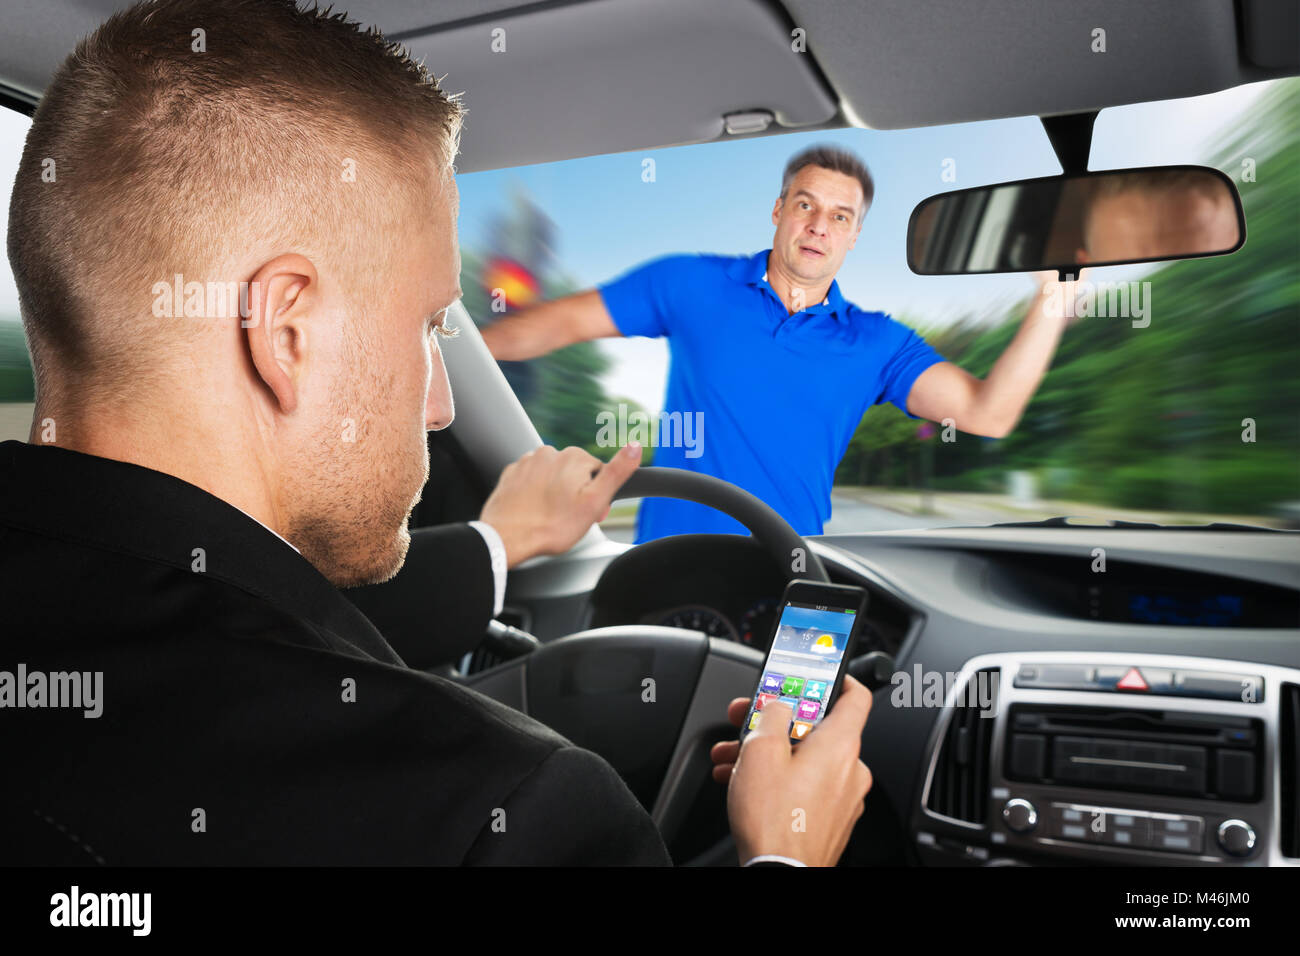 An Irresponsible Driver Is About To Run Over A Pedestrian While Using Mobilephone - Stock Image